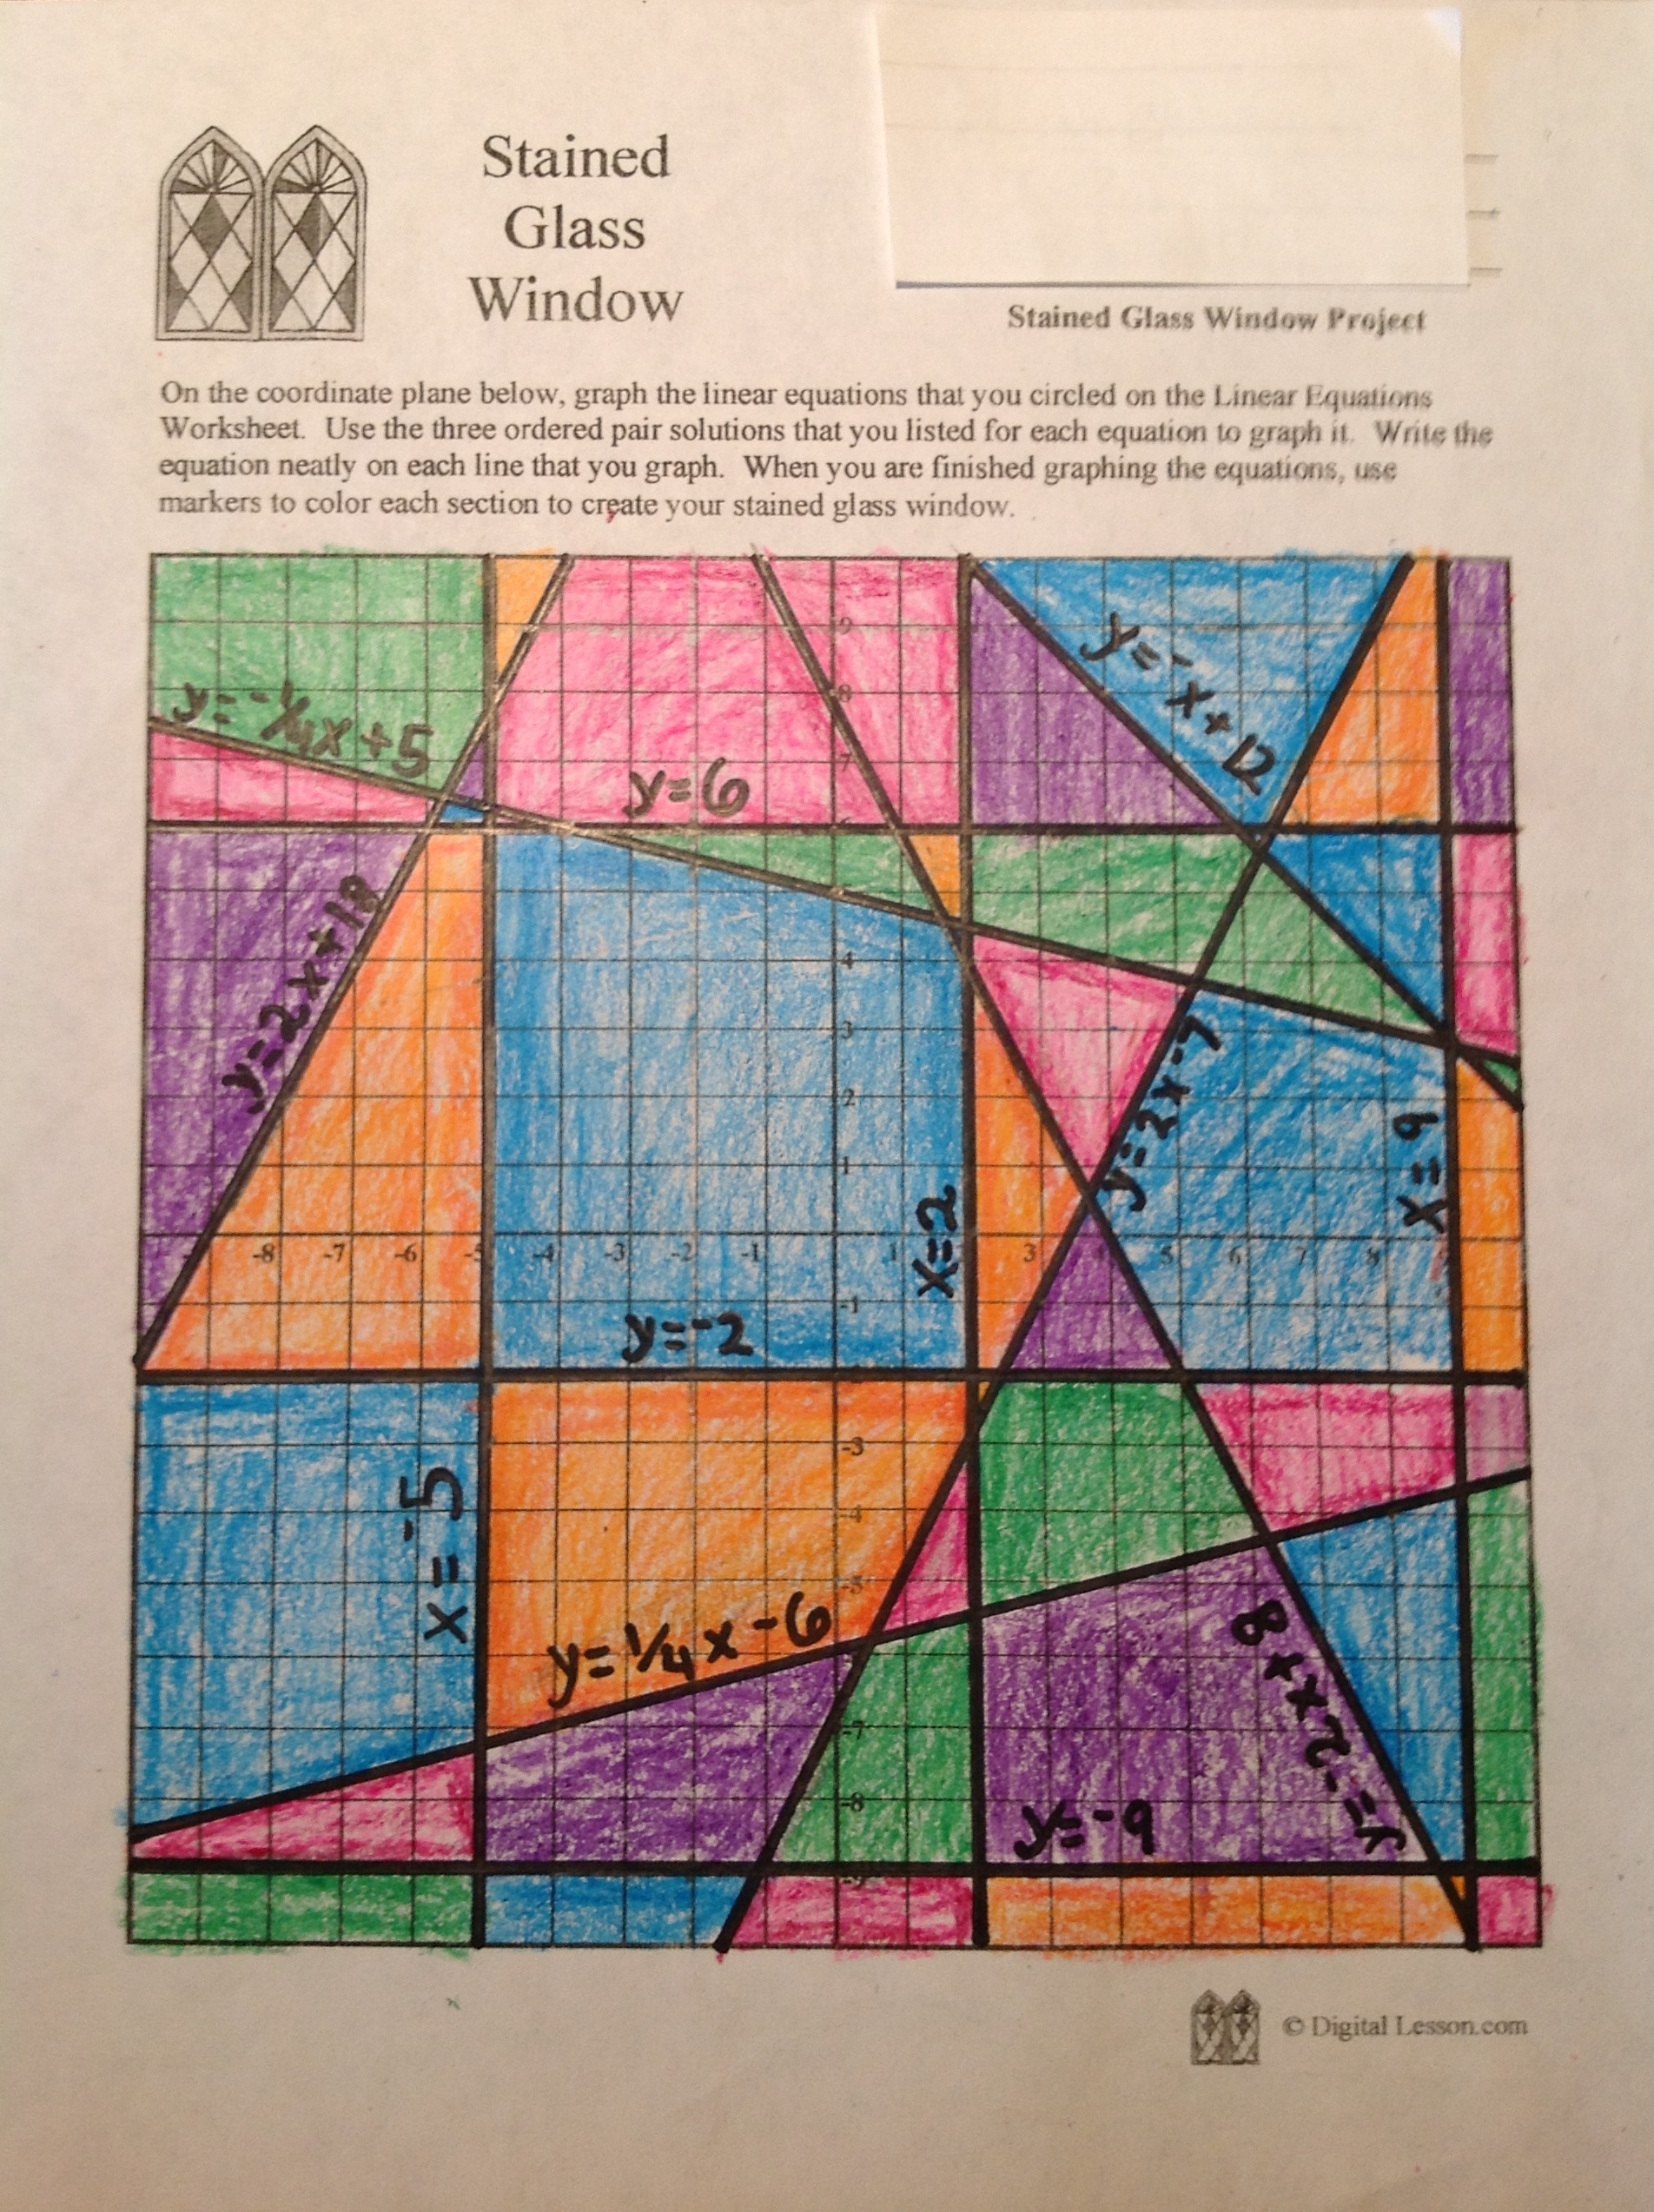 Graphing Linear Equations Quilt Project Worksheet Answer